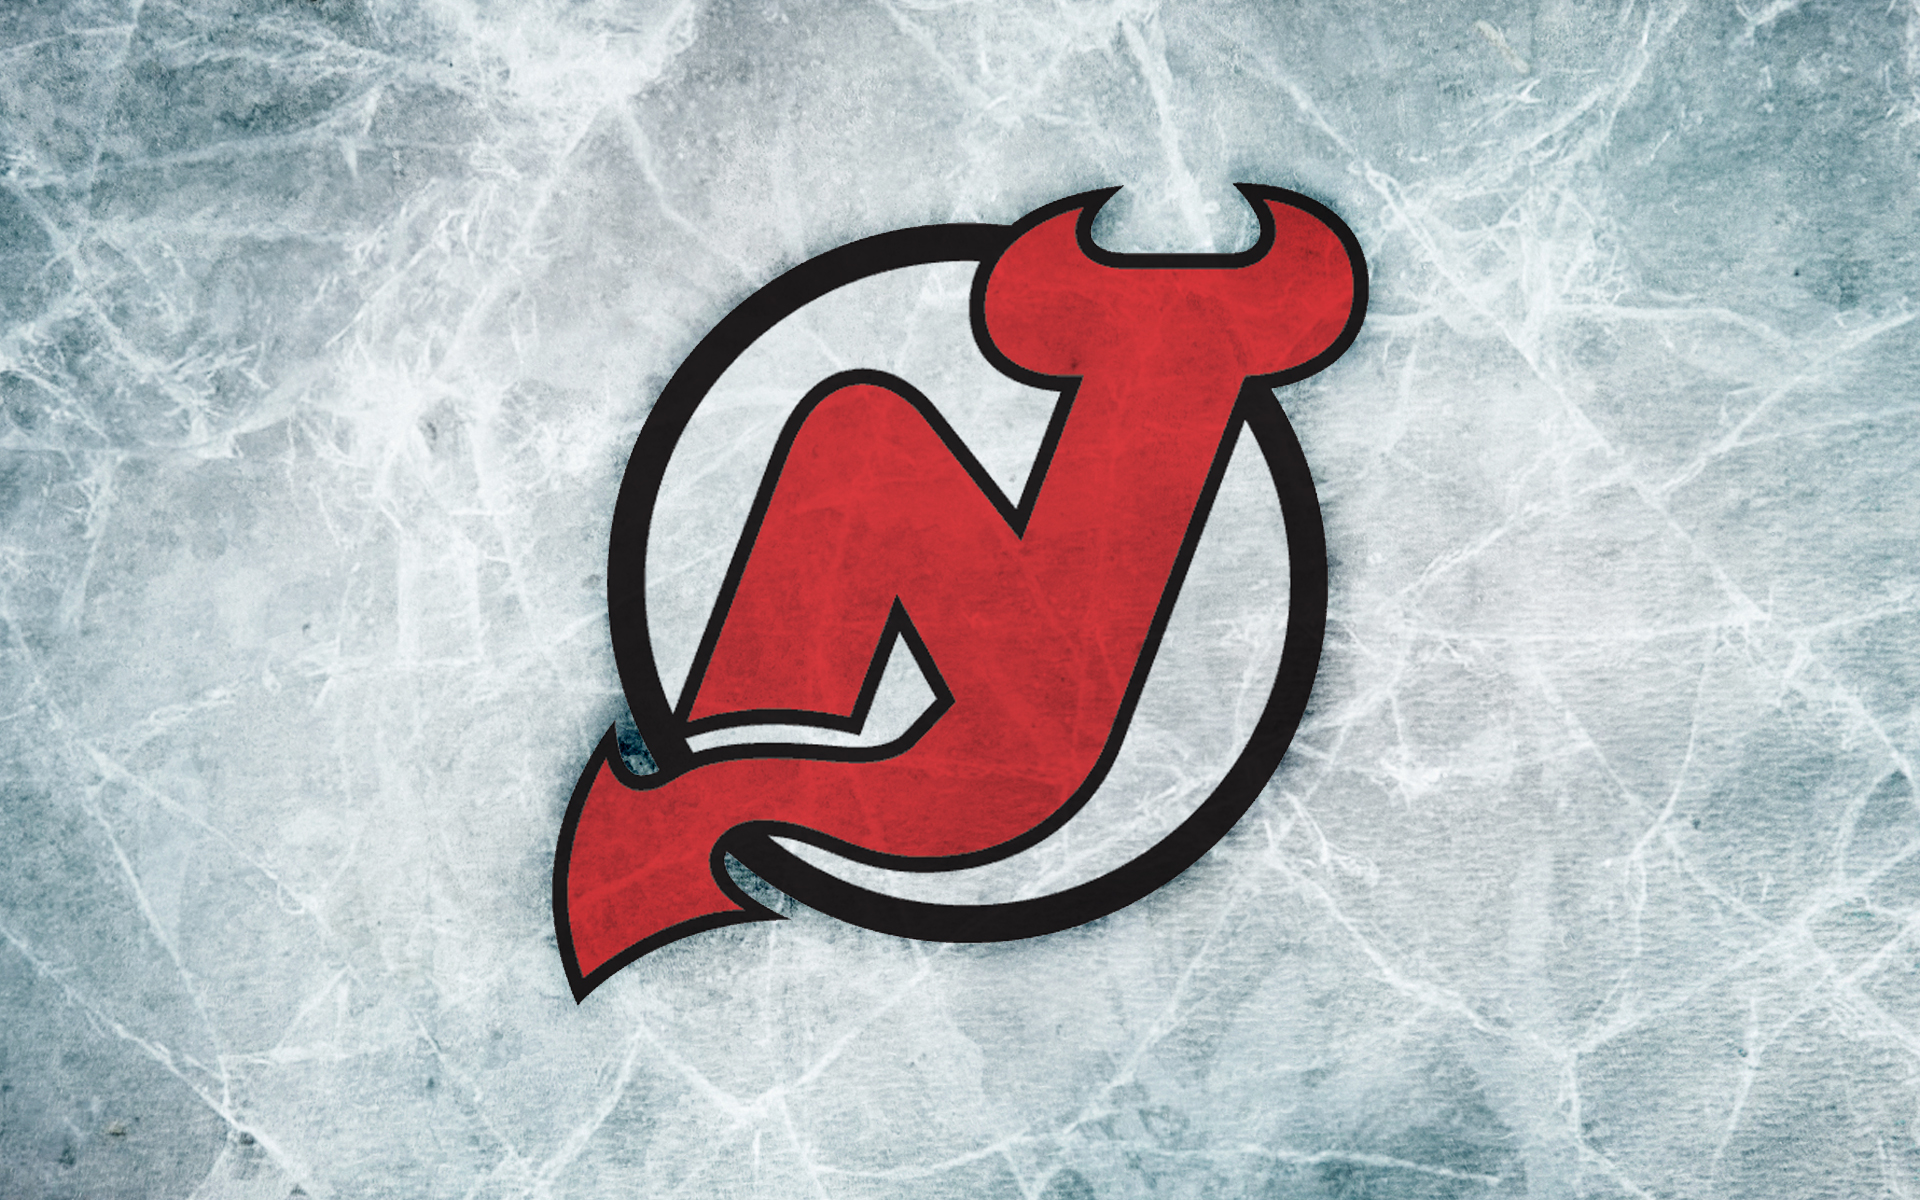 1920x1200 - New Jersey Devils Wallpapers 2